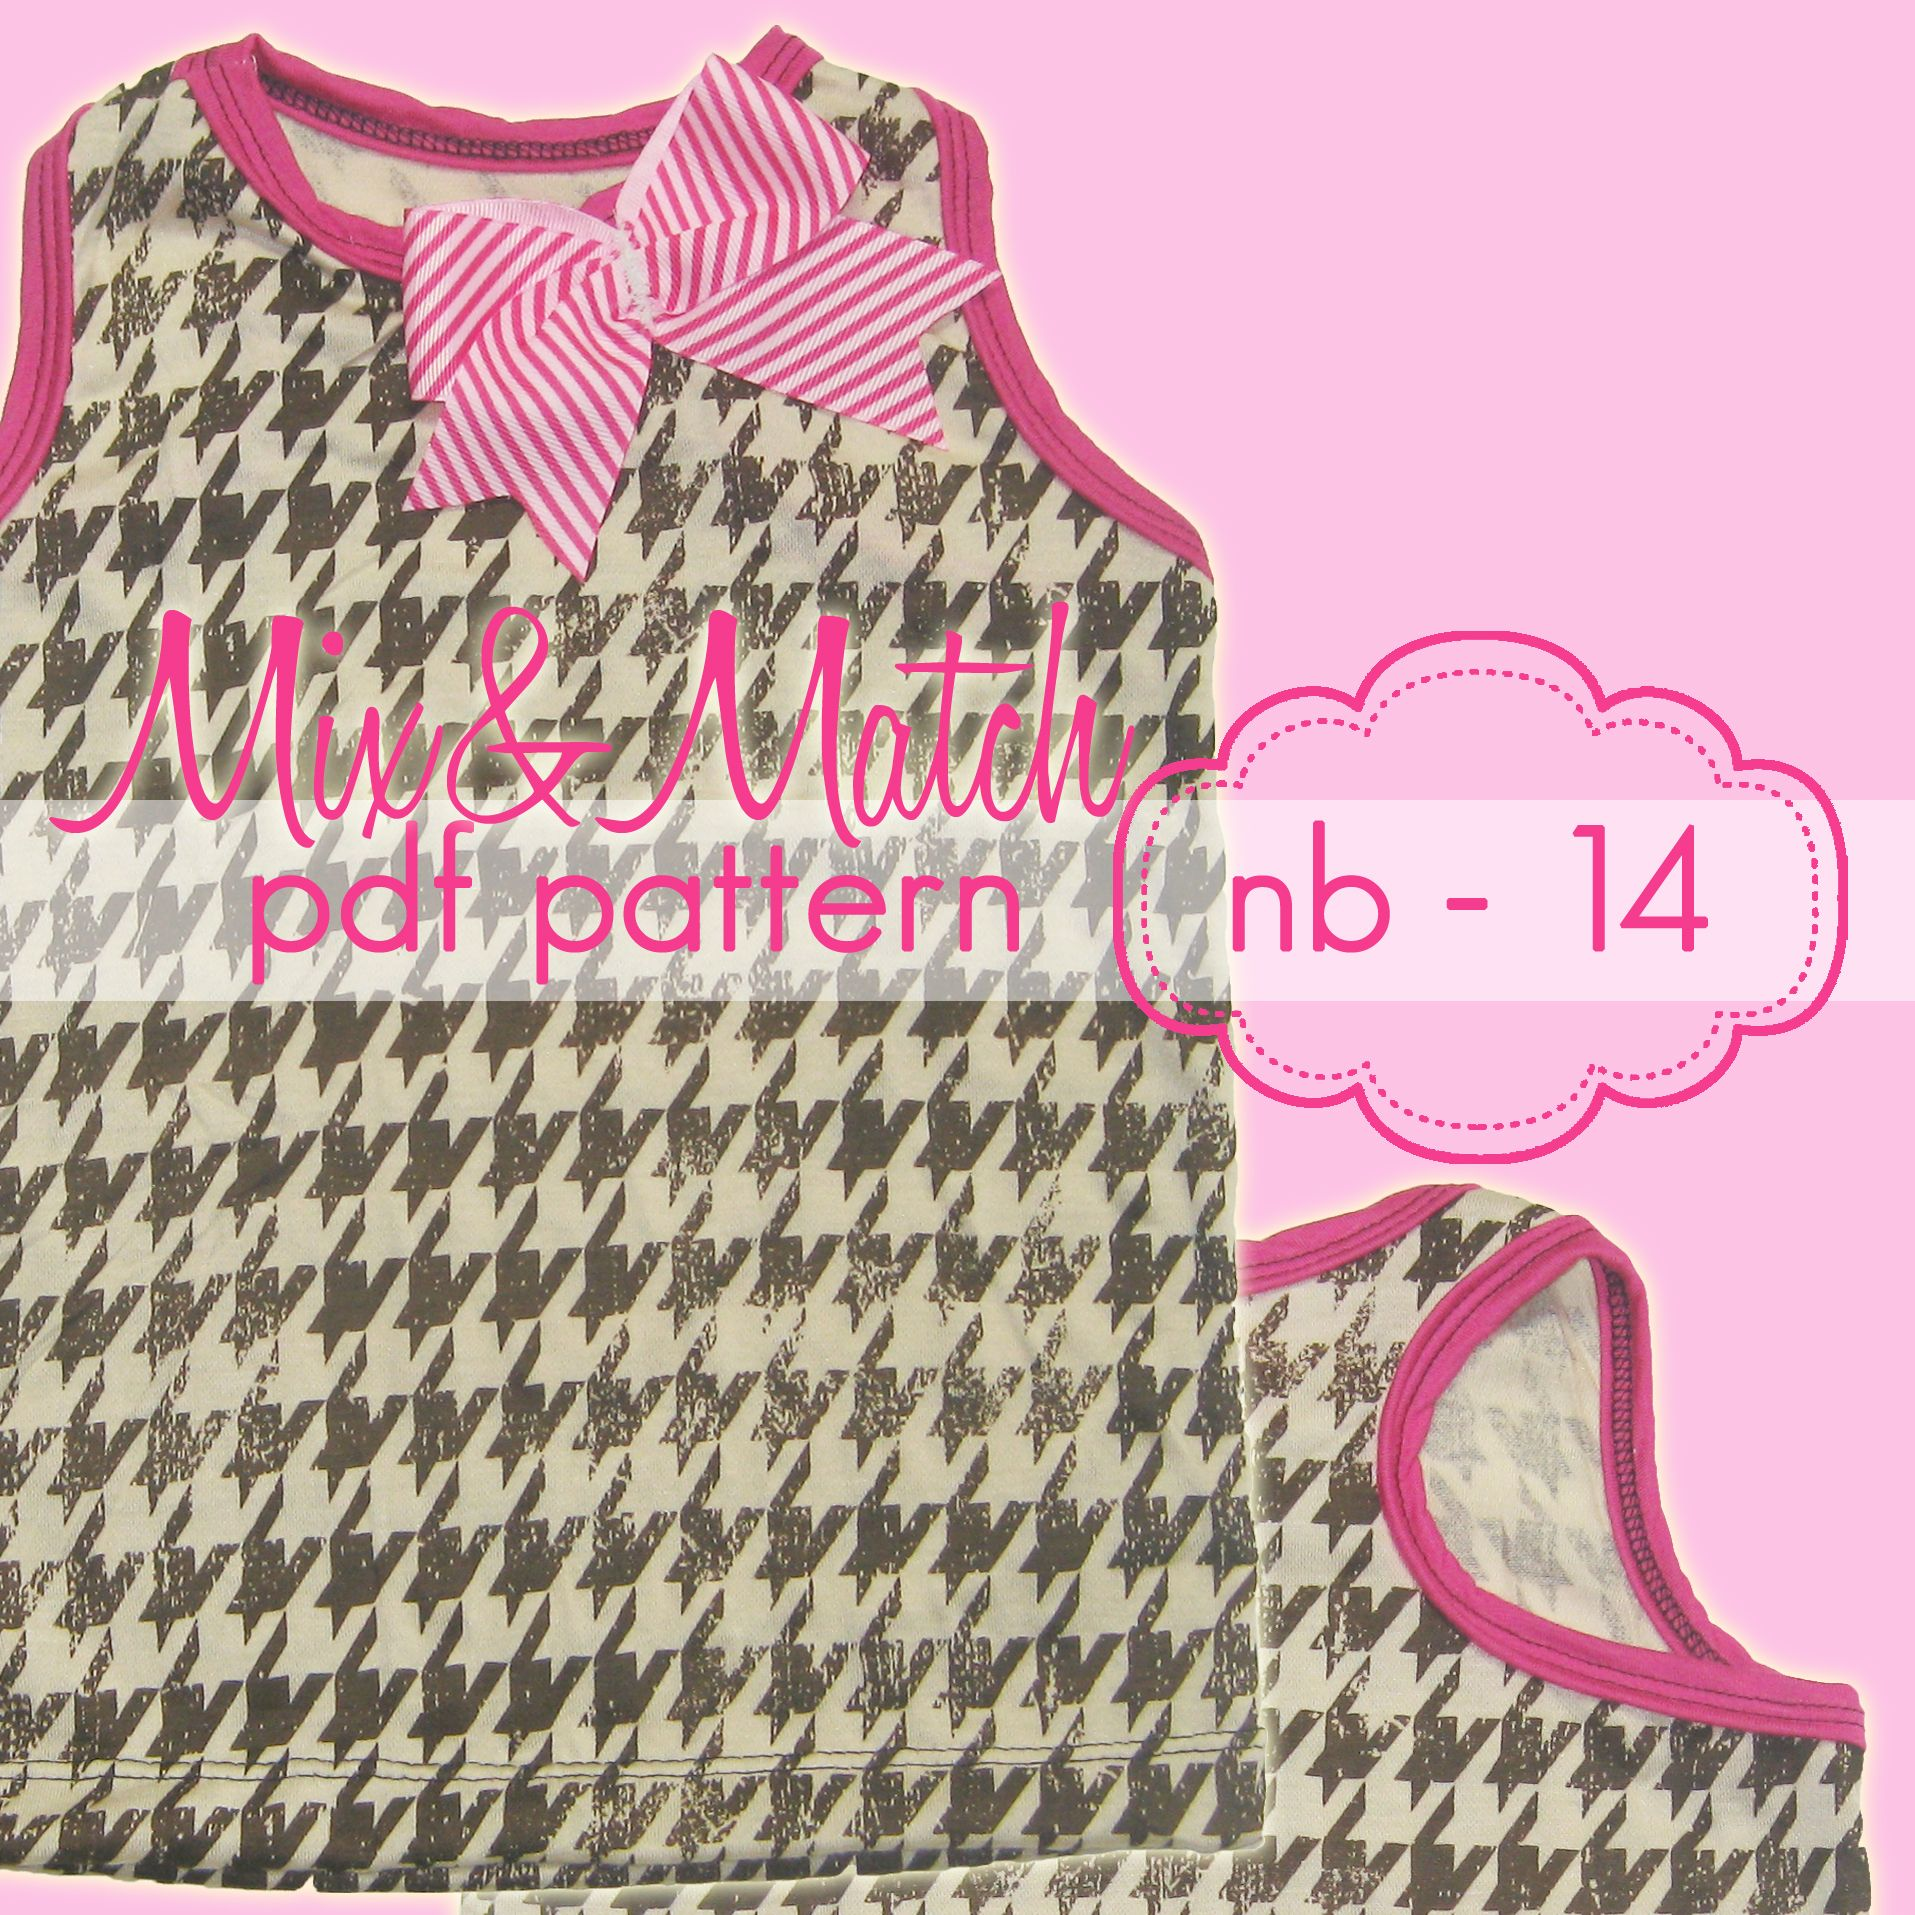 Mix & Match patterns are completely interchangeable and can be combined in endless variations ... this is only for the TEE BOTTOM, the bodice portion is NOT included -- we used the Racerback Tank Bodice This pattern includes a basic hip-length bottom that easily transforms ANY of our bodice patterns into a simple hip-length tee or tank !! www.jocole.net #jocolepatterns #mix&matchseries #bodicebottom